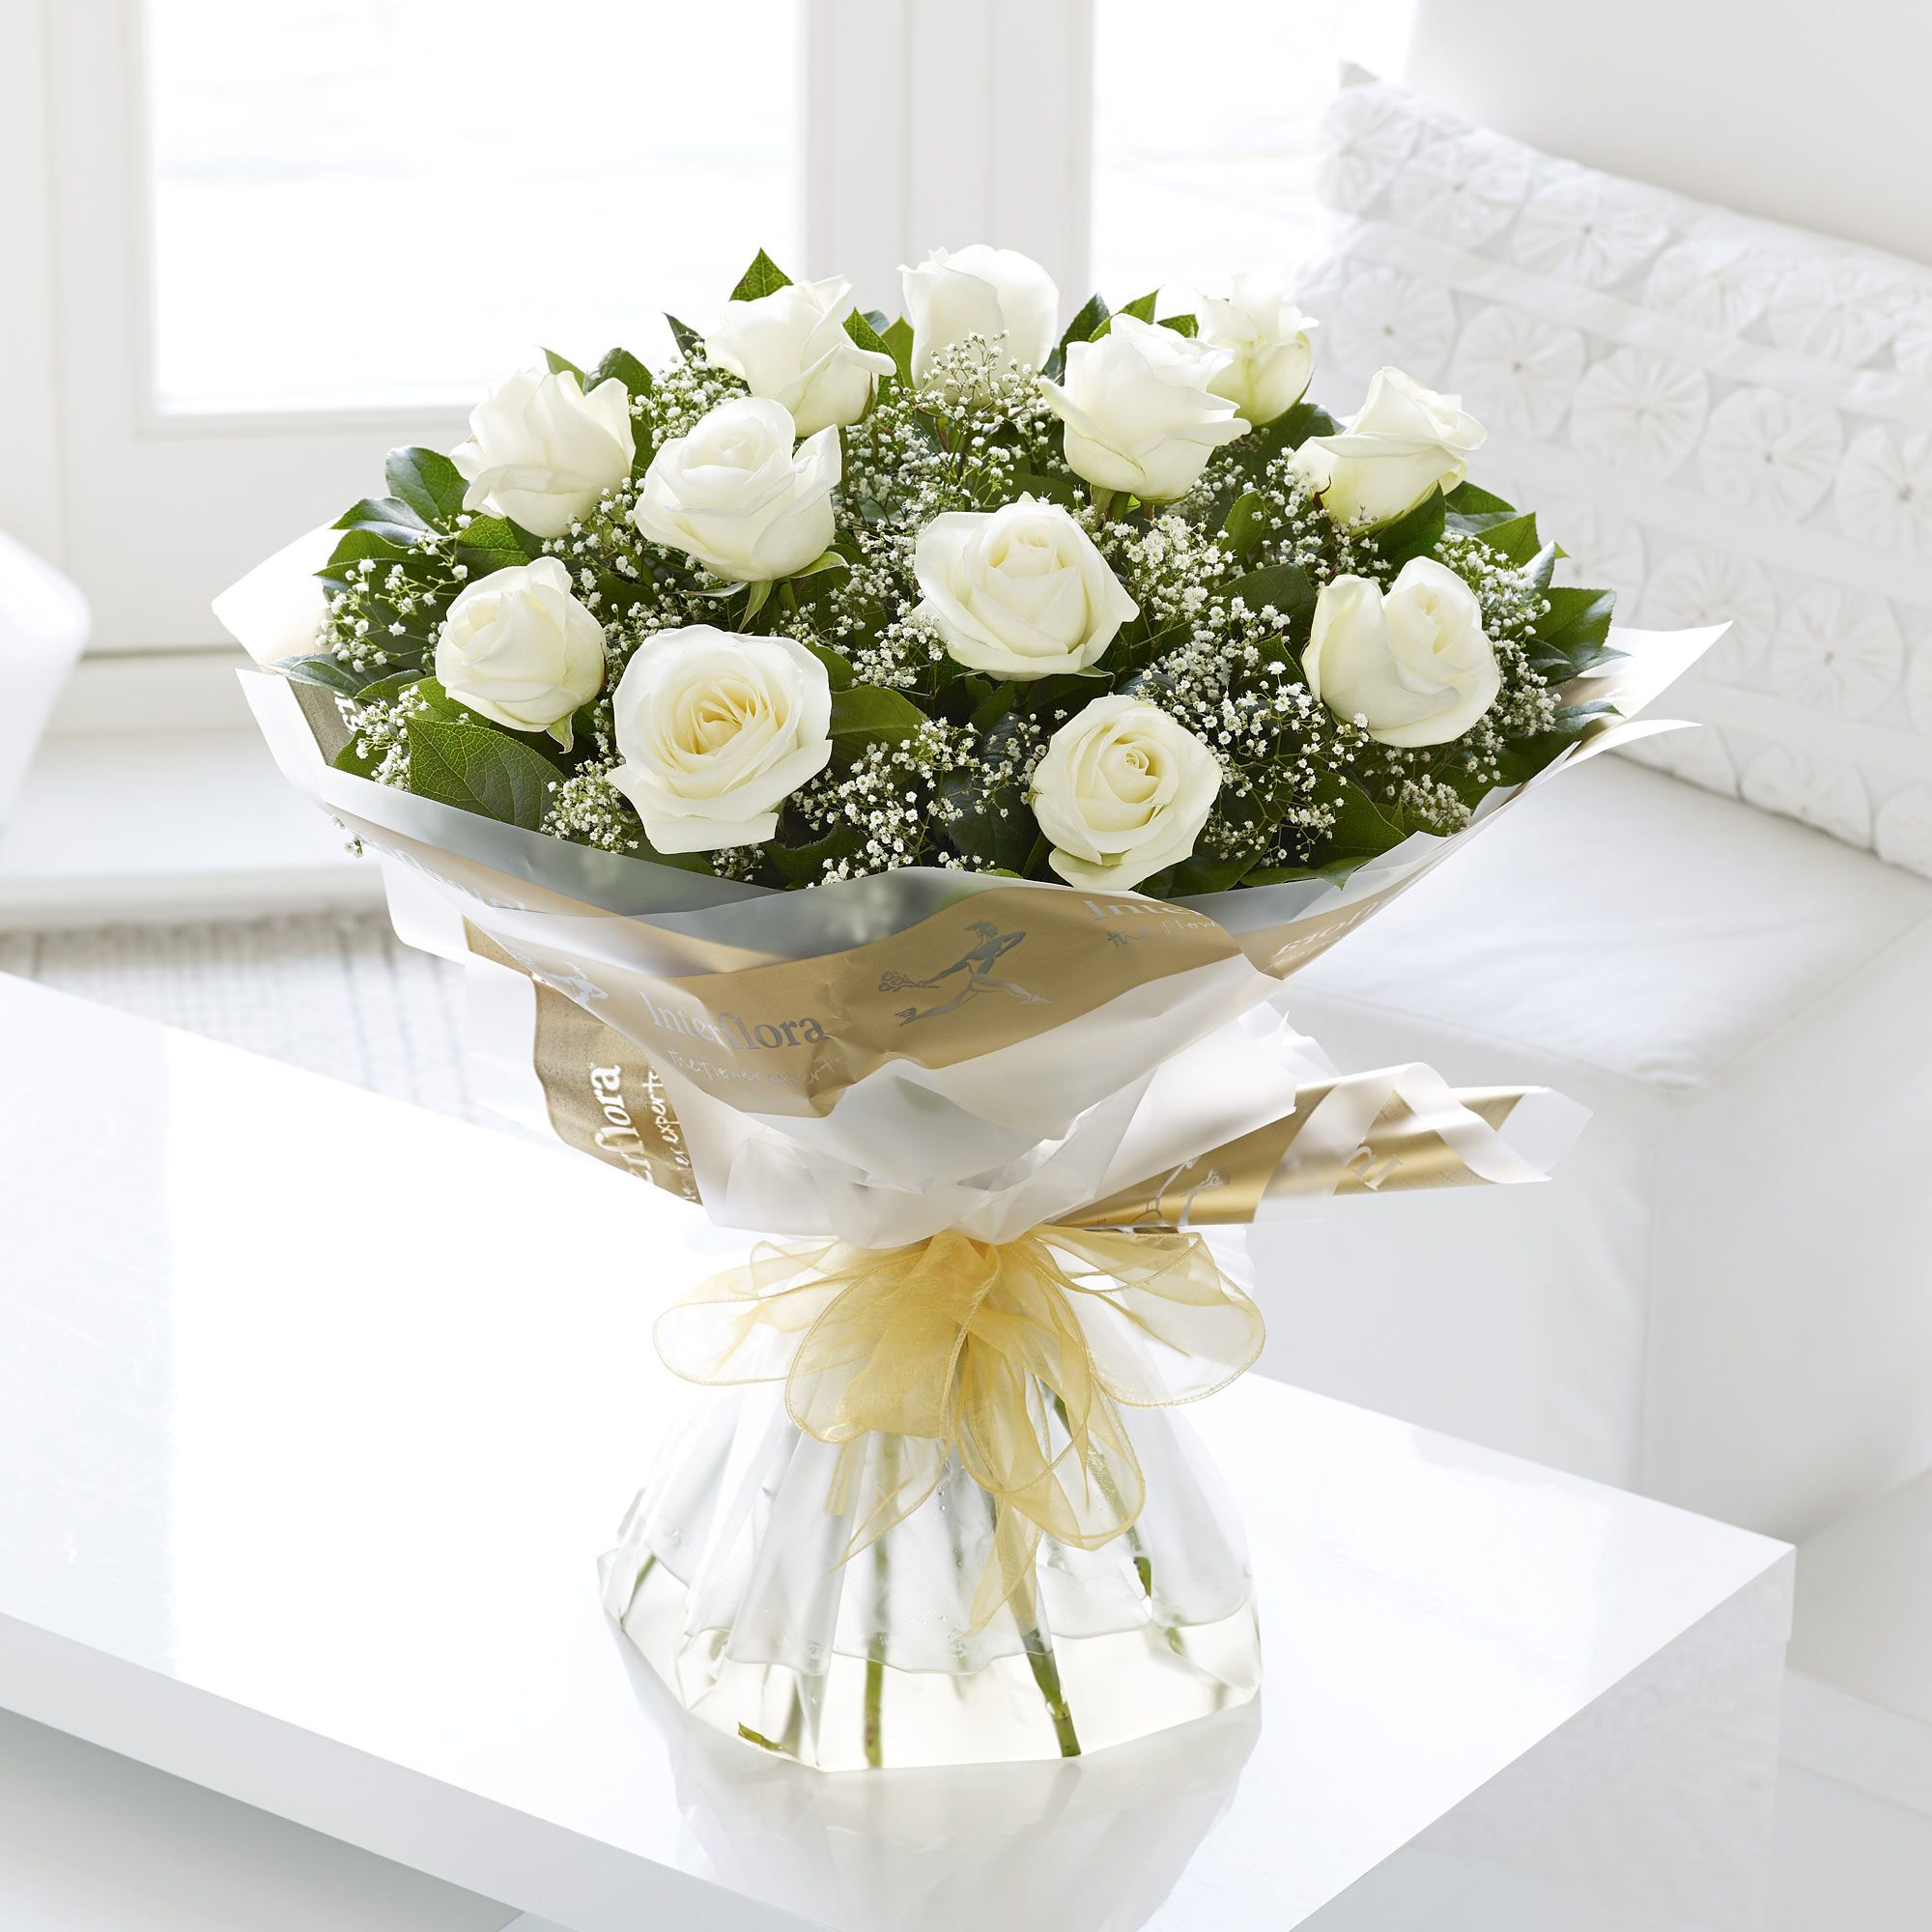 Heavenly white roses handtied with gypsophila and salal